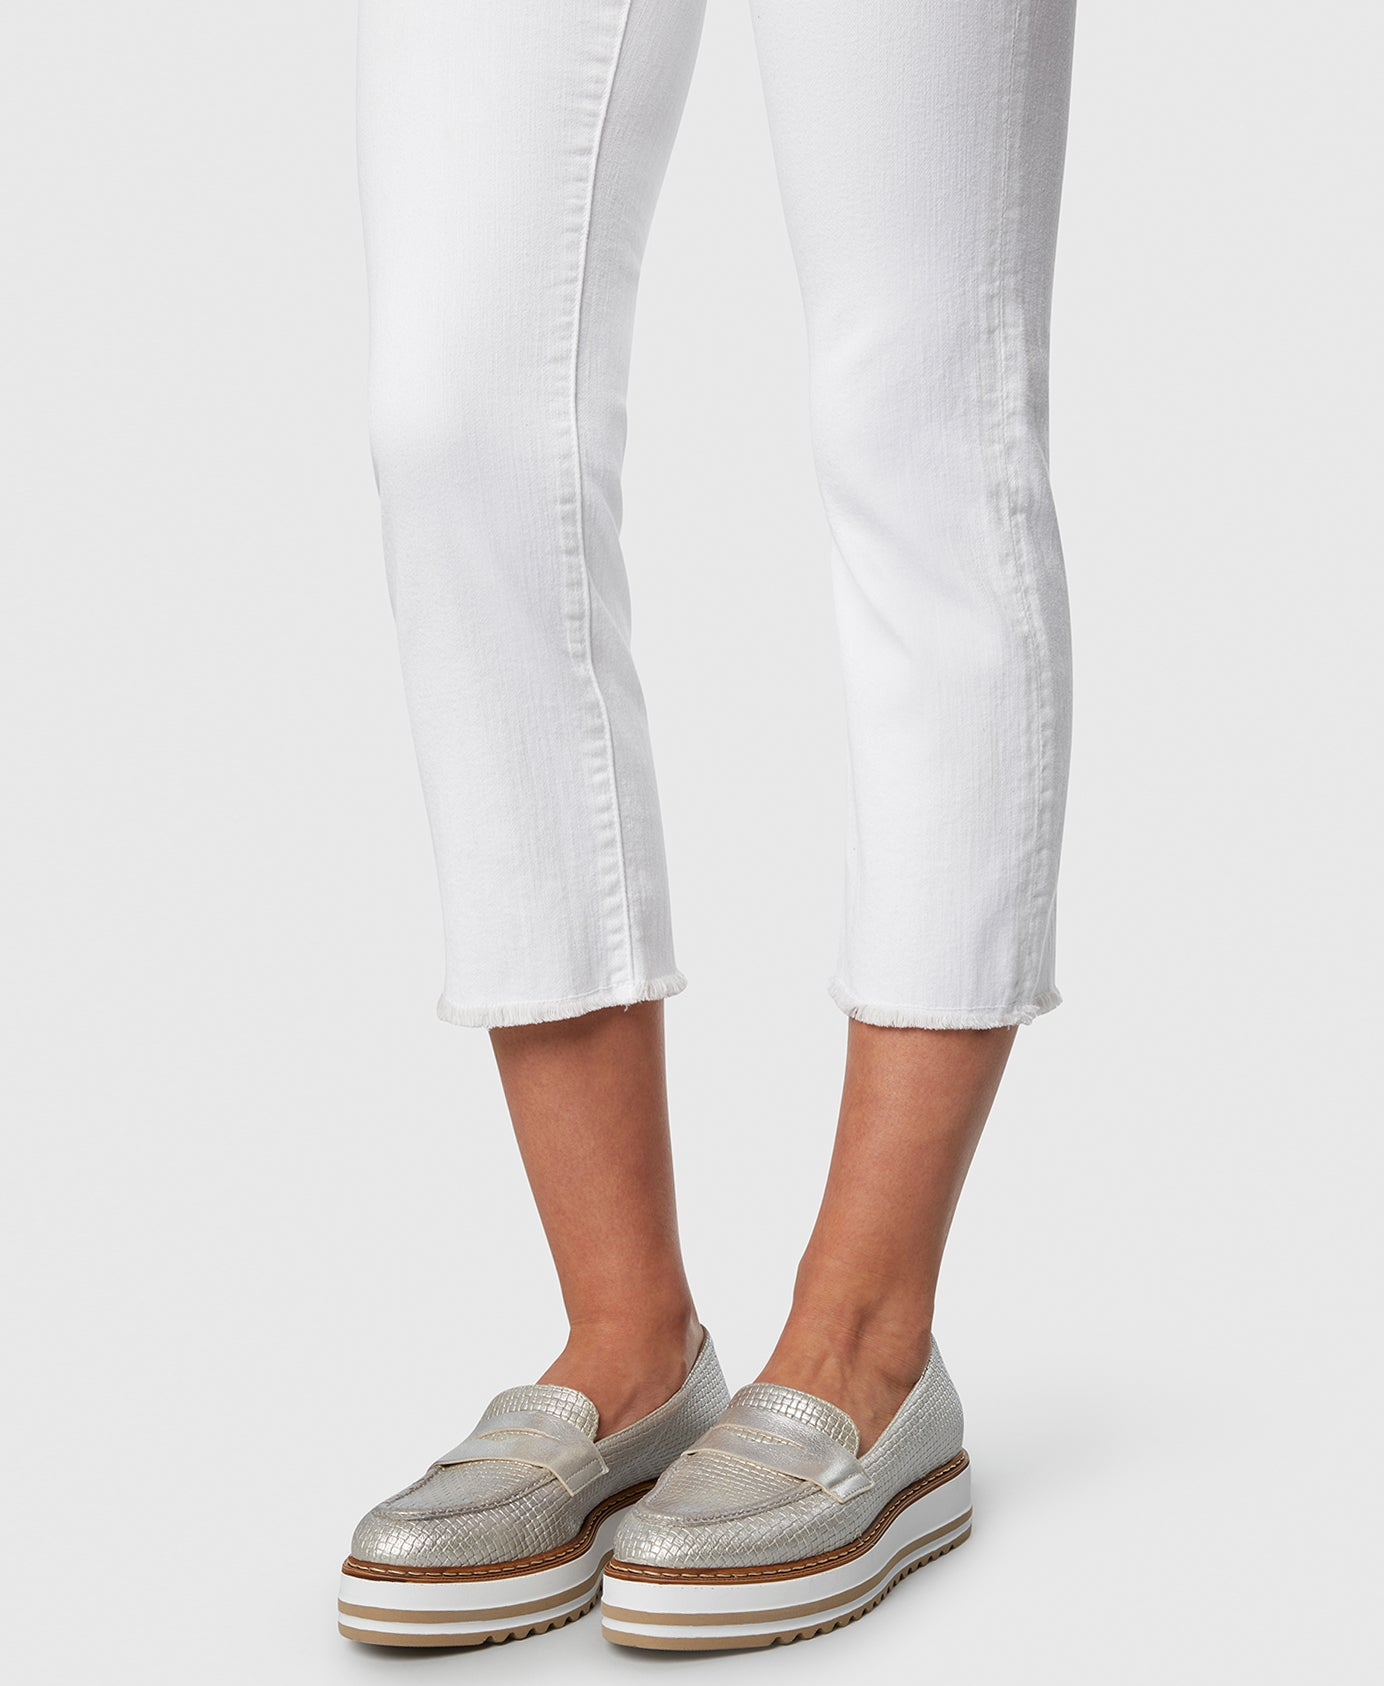 Principle OPTIMIST in White cropped jeans detail